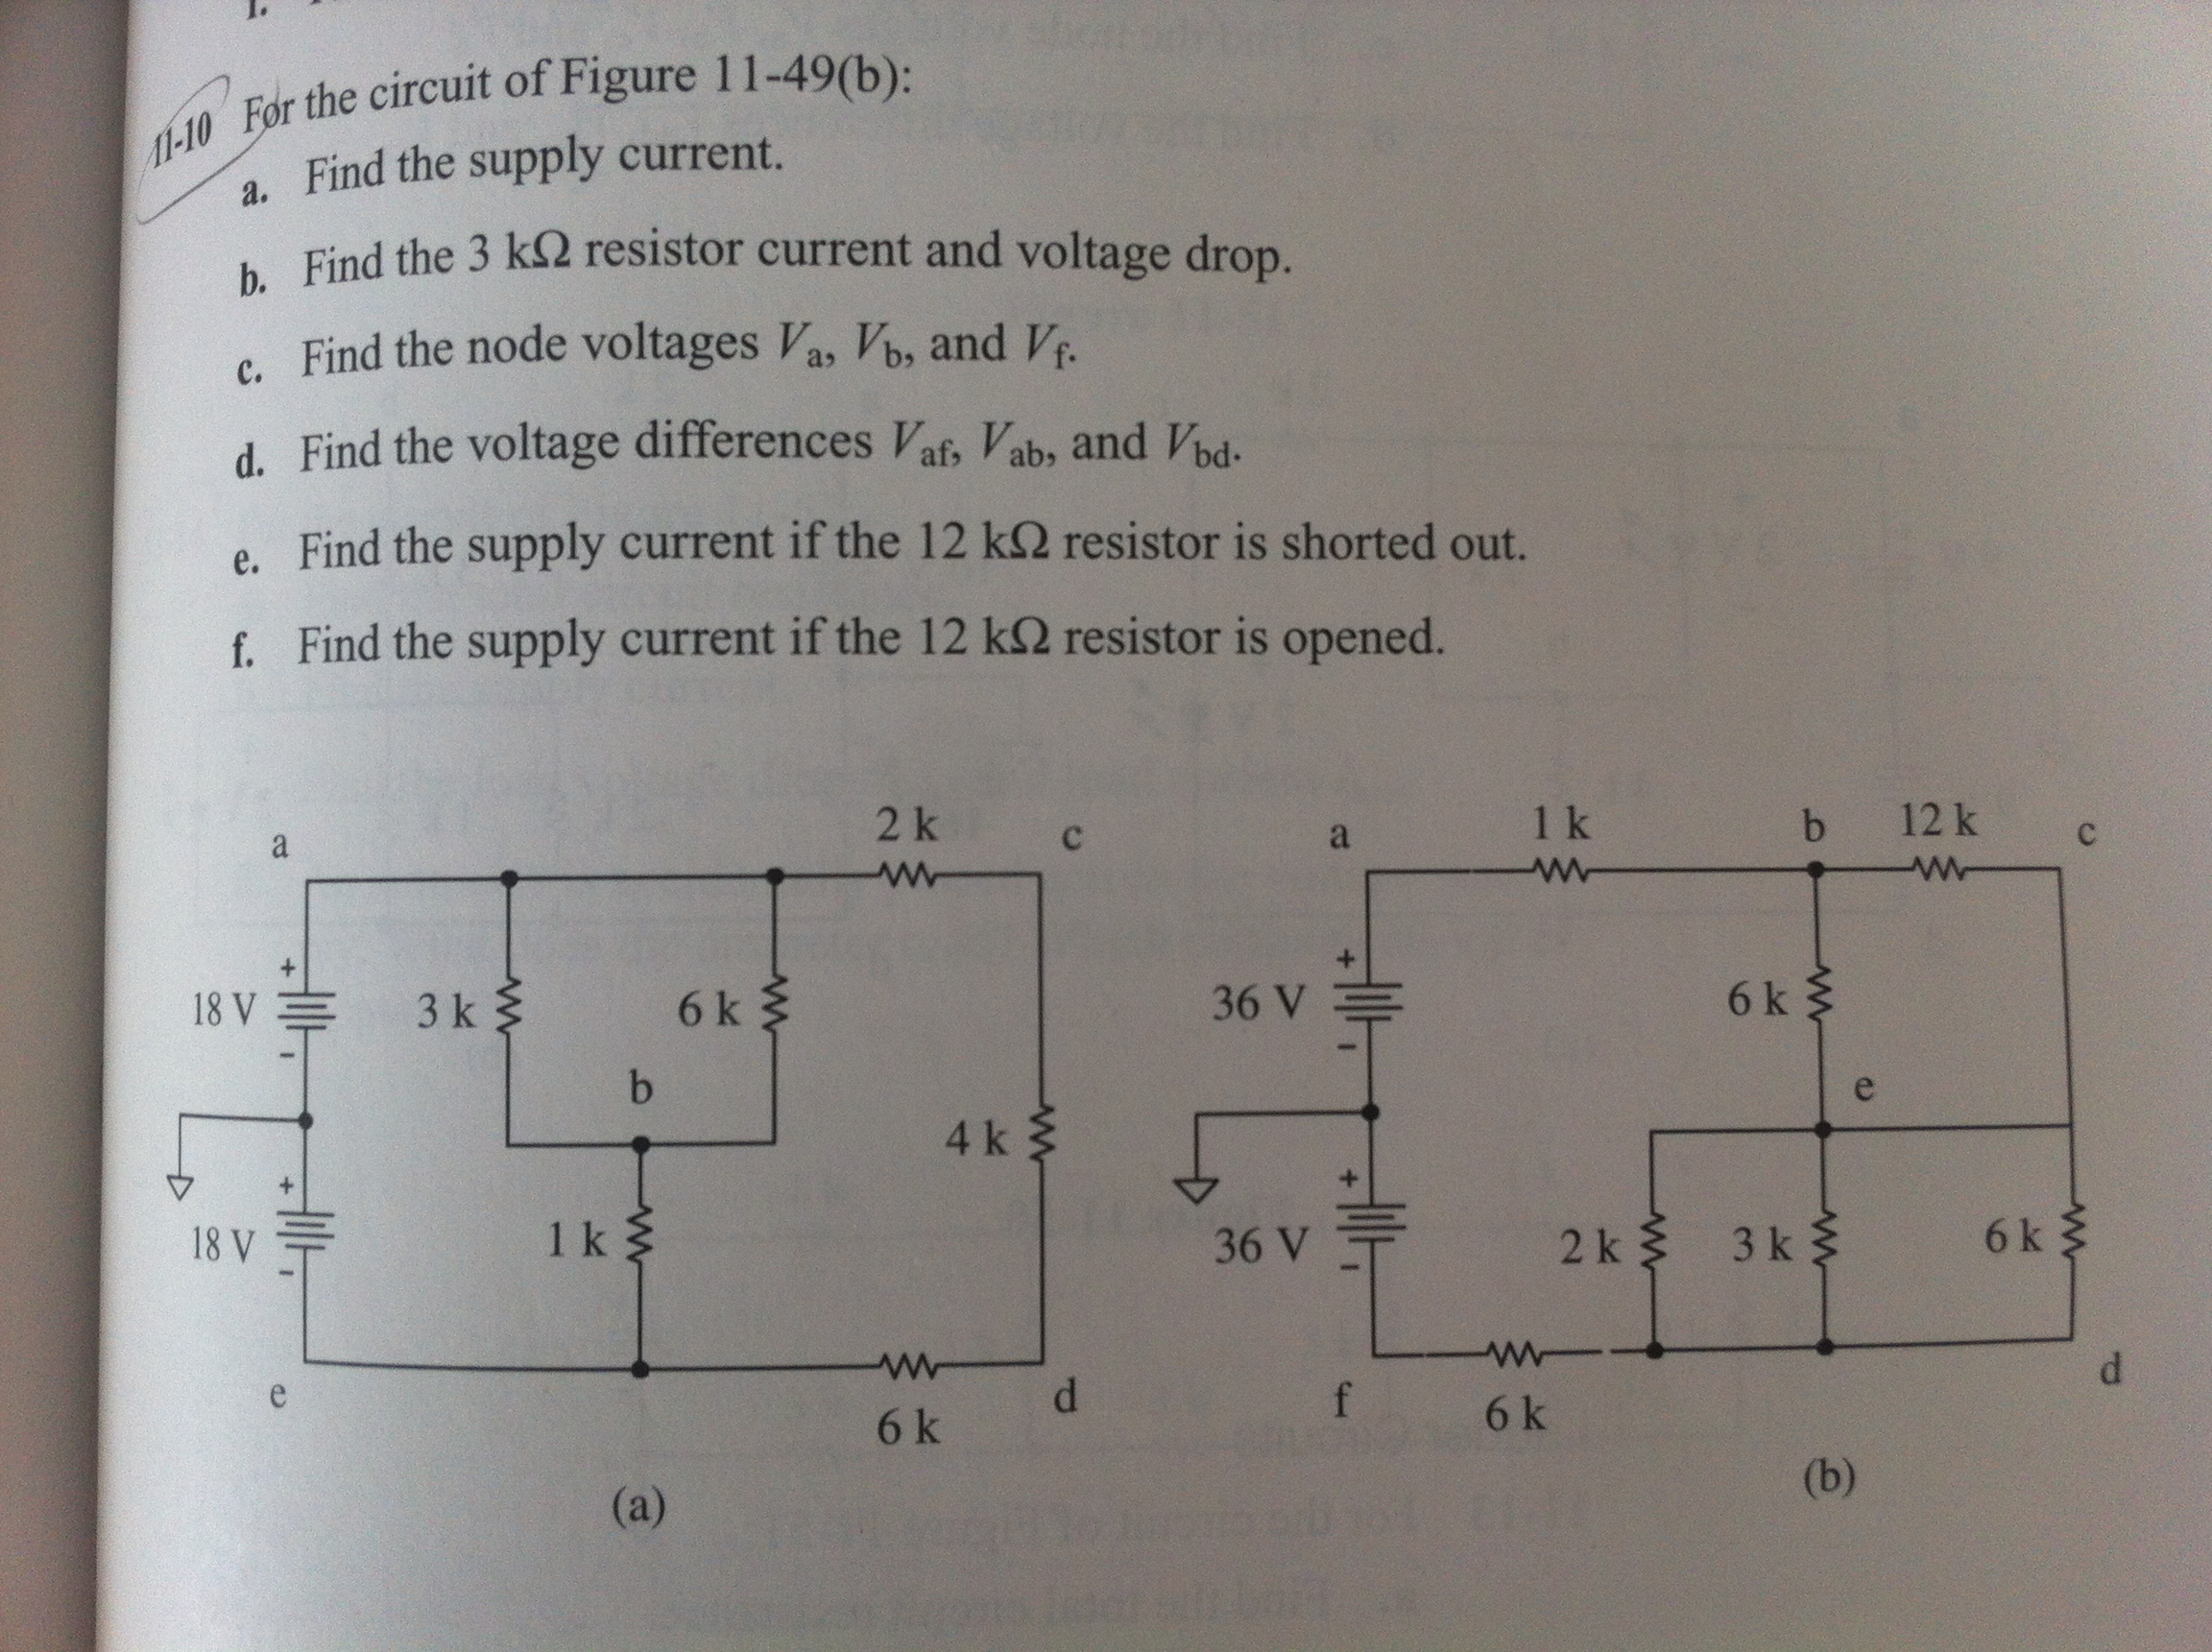 For the circuit of Figure 11-49(b): Find the suppl